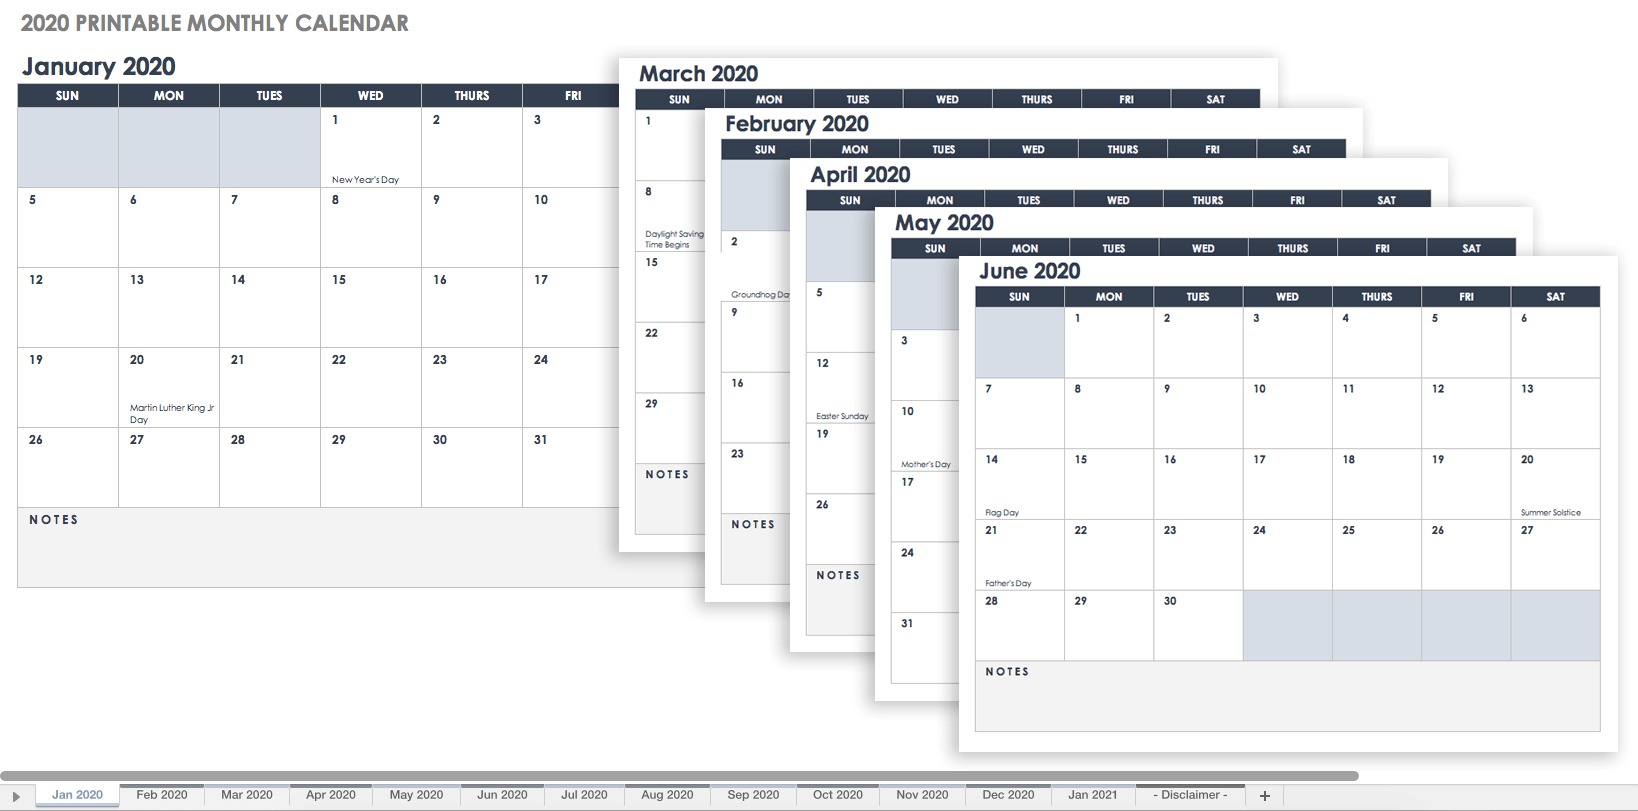 15 Free Monthly Calendar Templates | Smartsheet intended for Calendar Printable Monthly Planner Templates